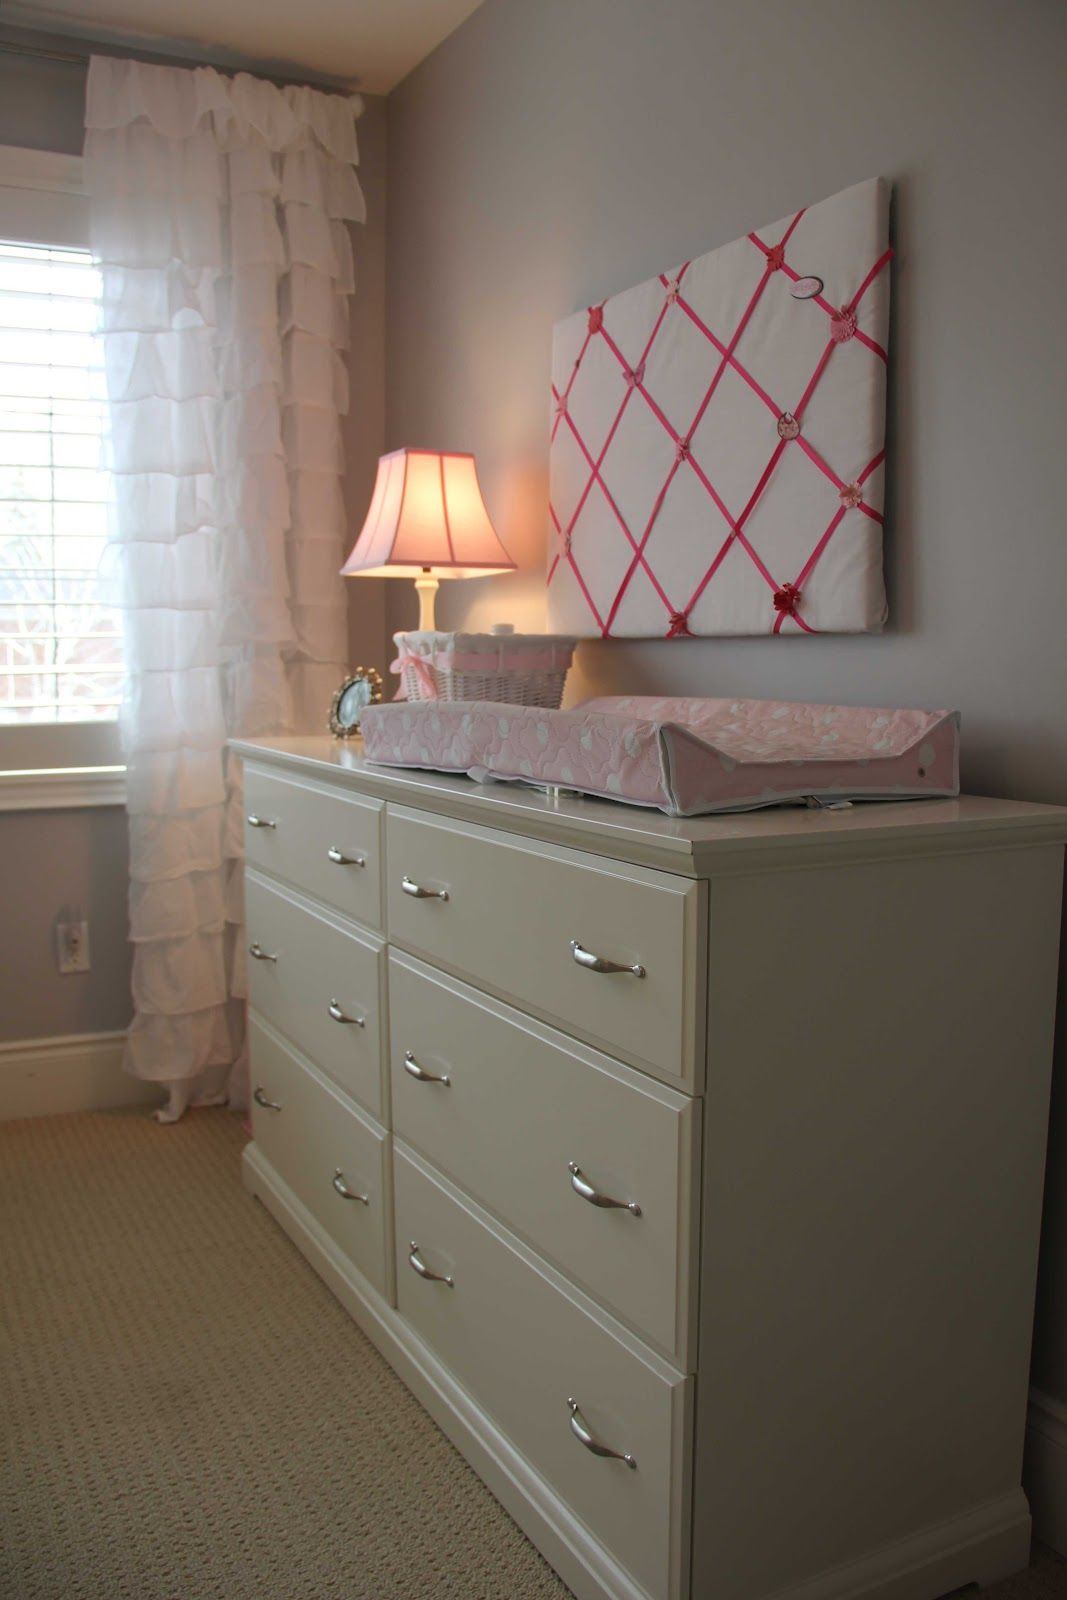 Ikea Birkeland Dresser Use It As A Changing Table Too